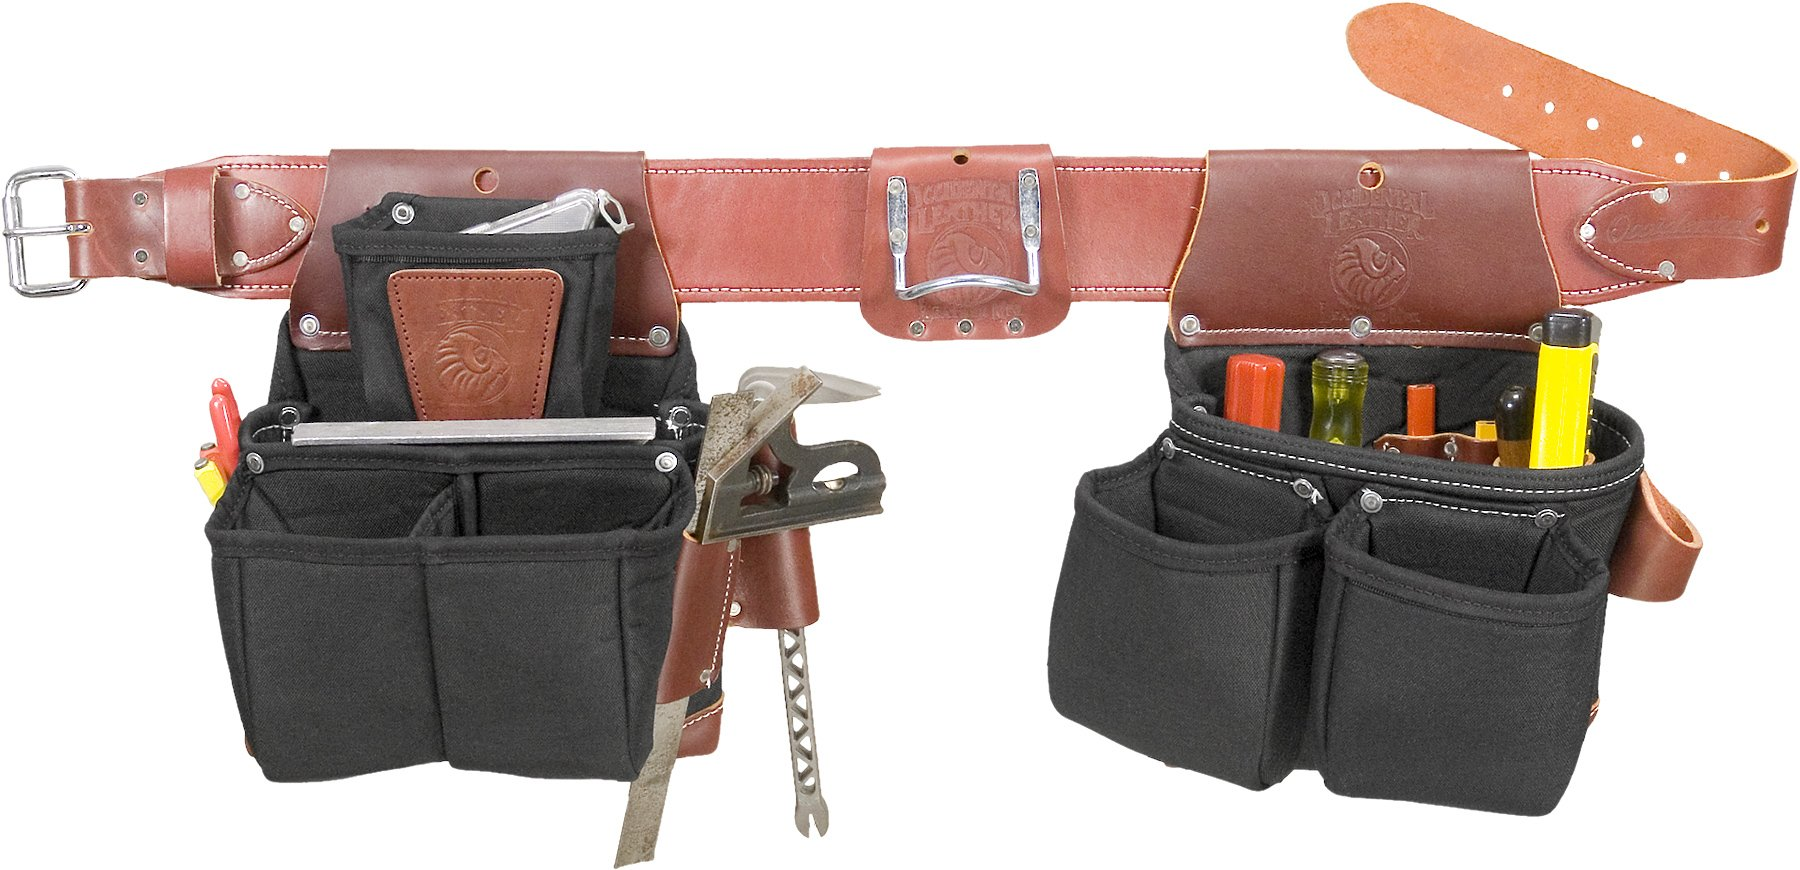 Occidental Leather 8086 M OxyLights Ultra Framer by Occidental Leather (Image #1)